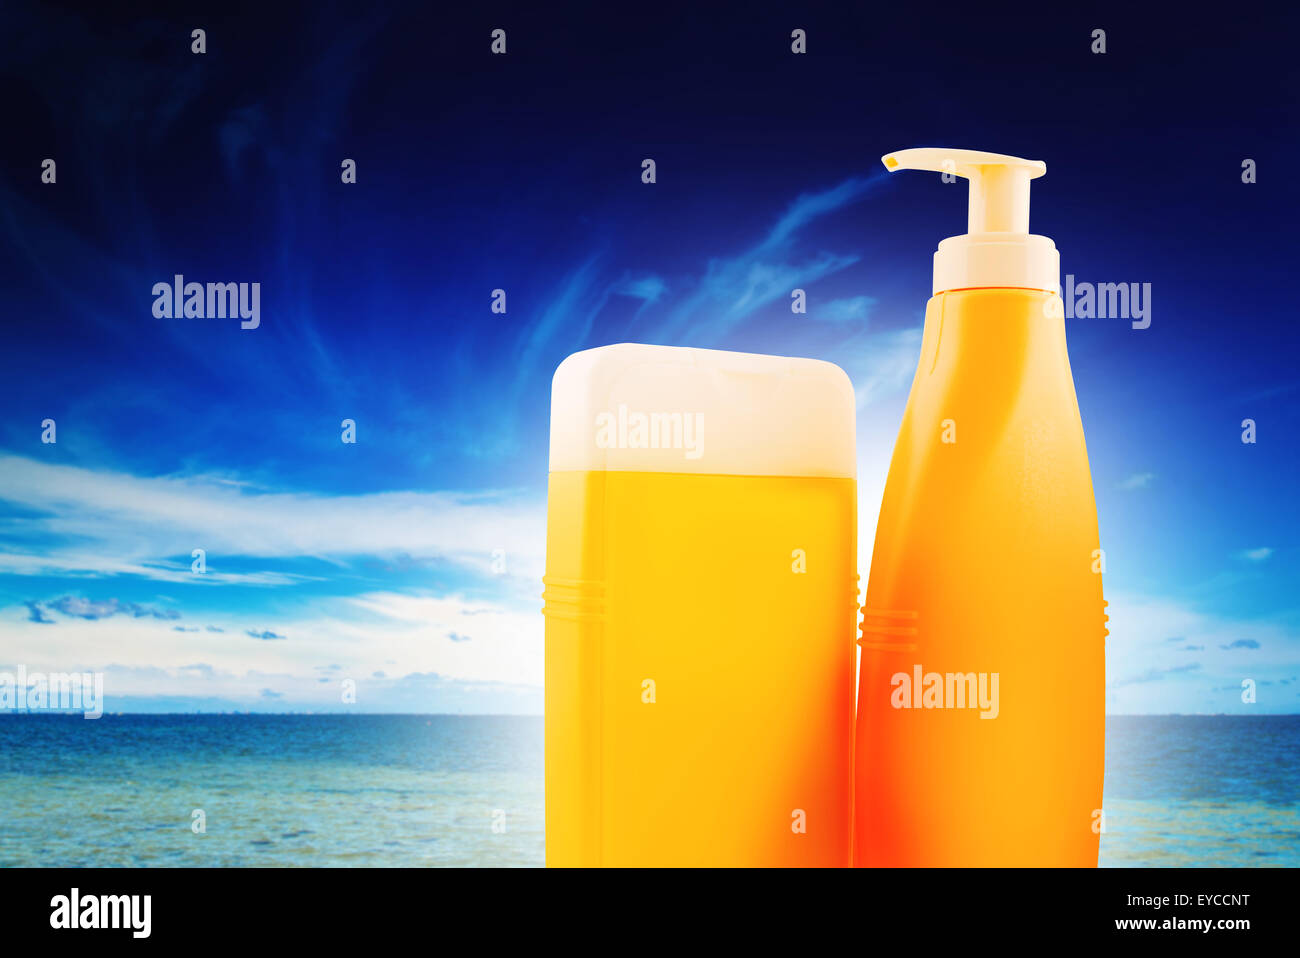 Blank Suntan Lotion Bottles on Sunny Seaside Beach - Stock Image